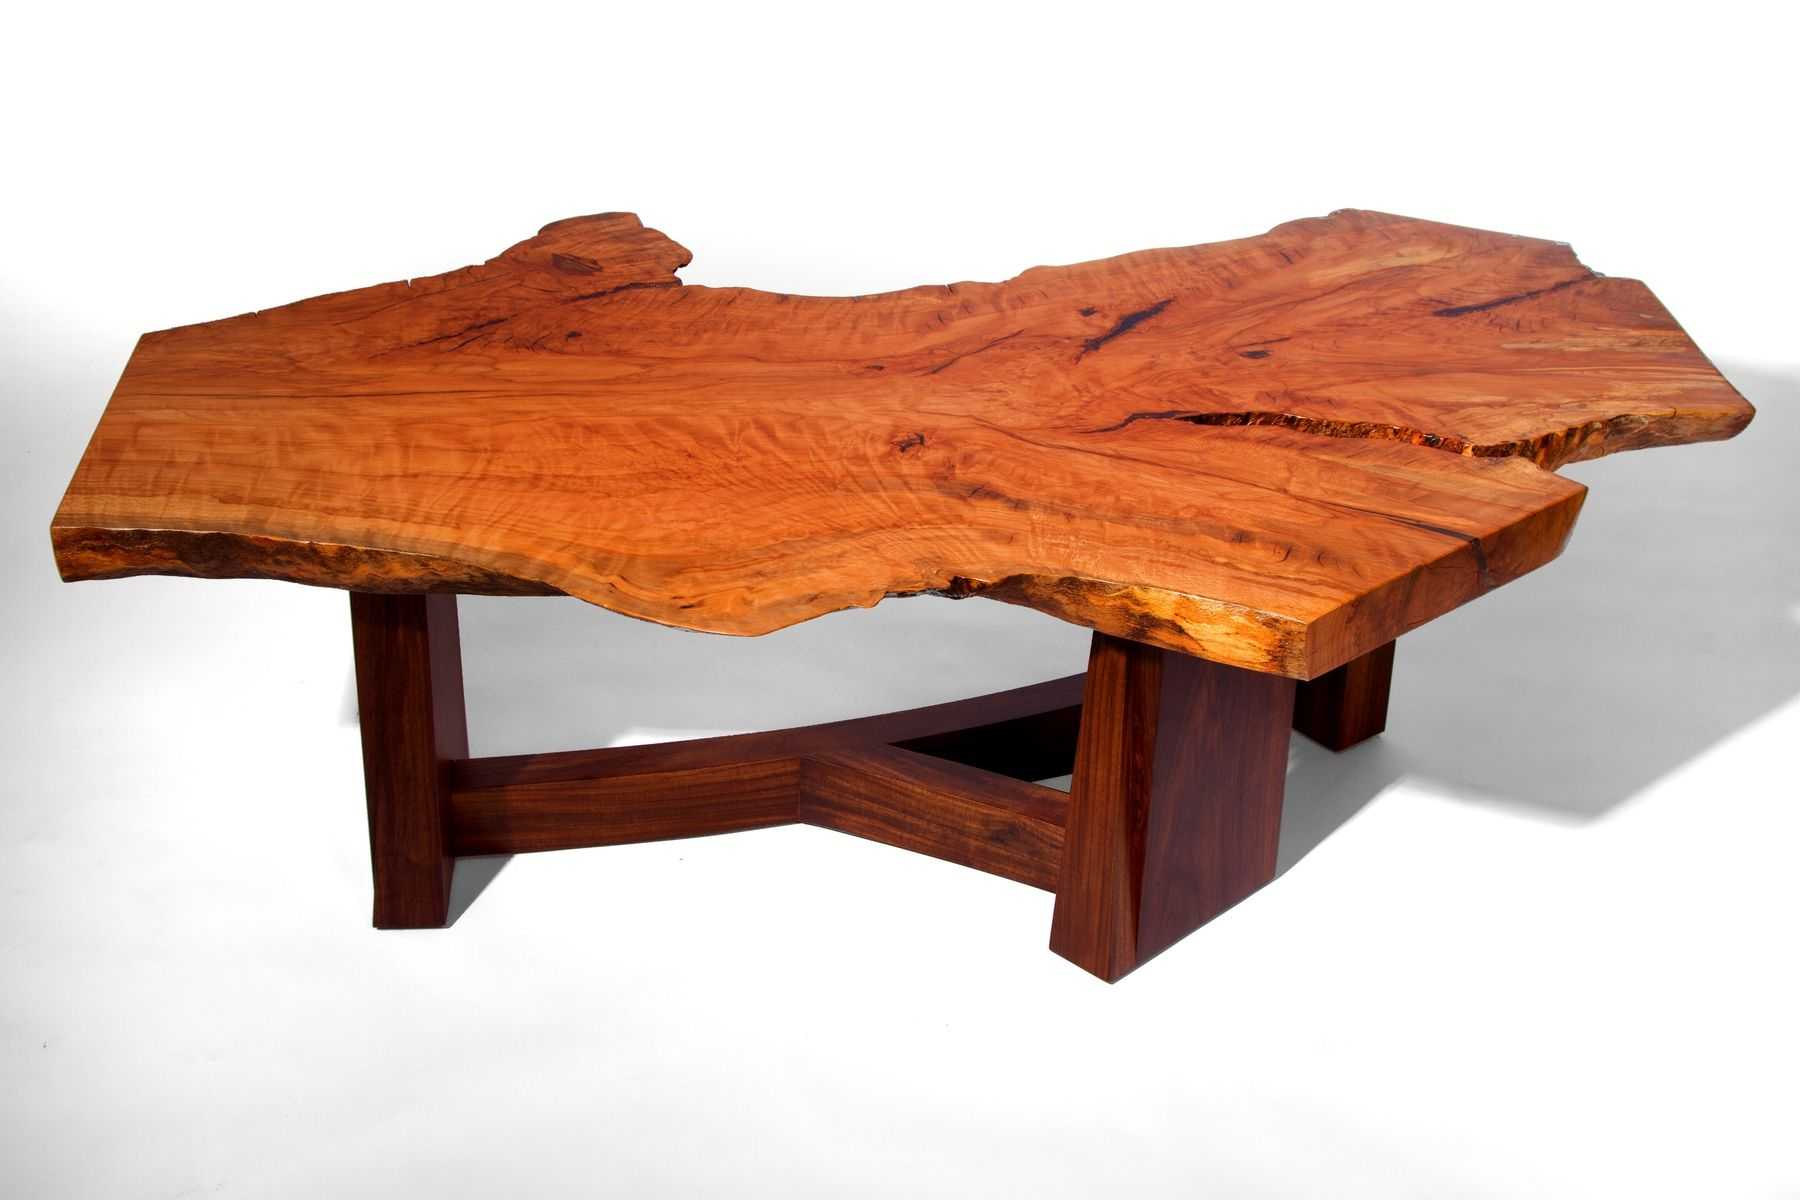 Hand Made Live Edge Beech Slab Coffee Table J Holtz Furniture inside proportions 1800 X 1200